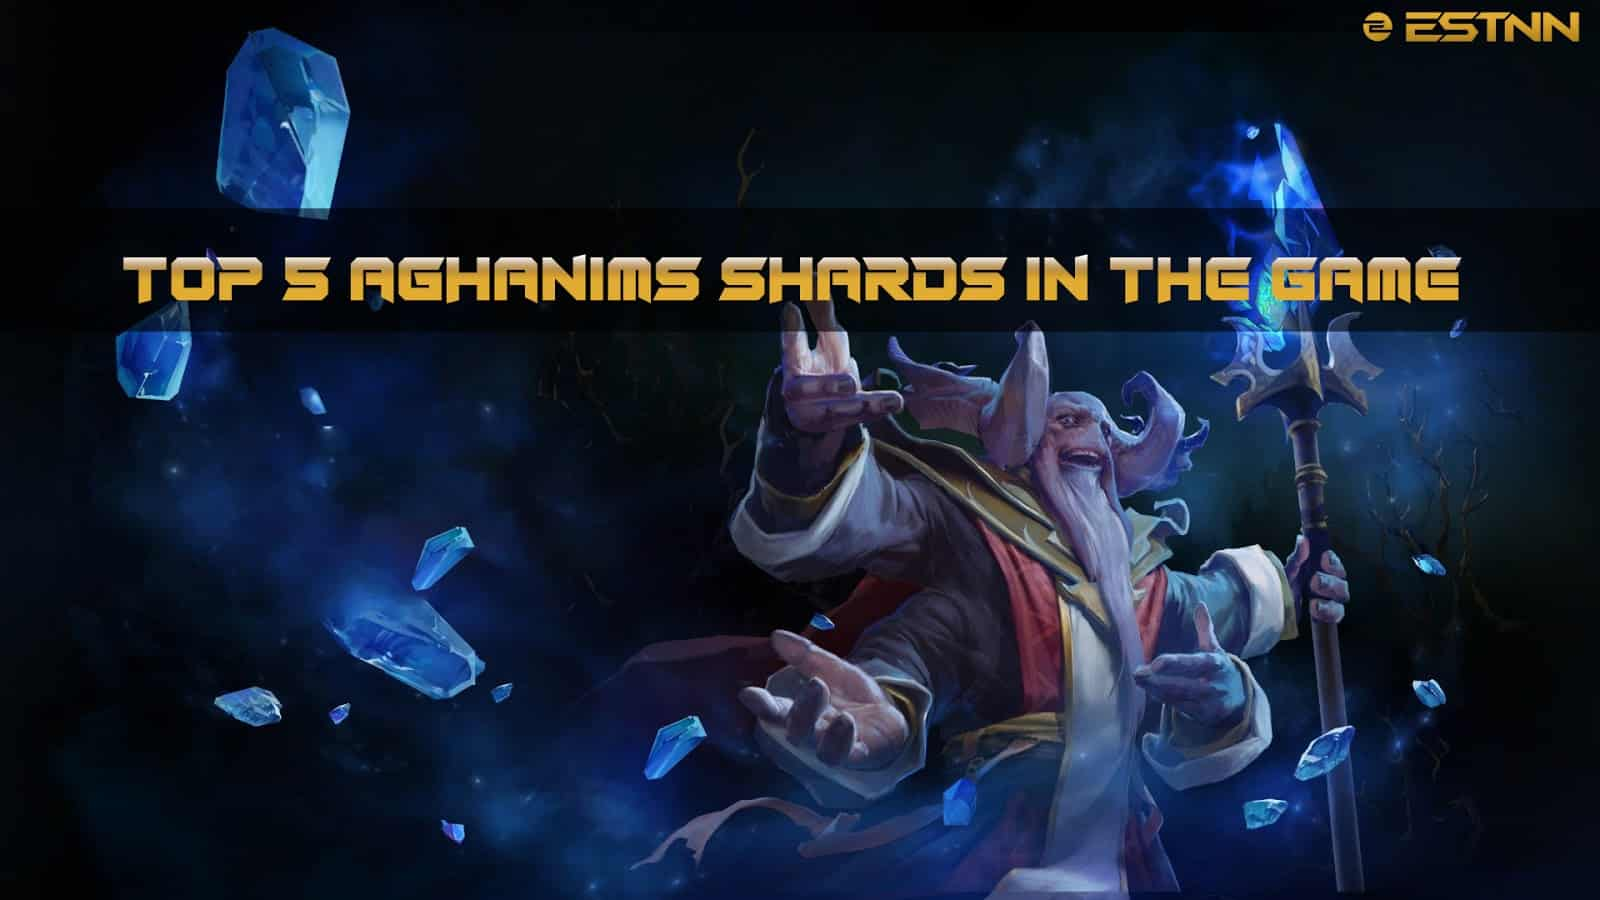 Dota 2: Top 5 Aghanim's Shards In The Game